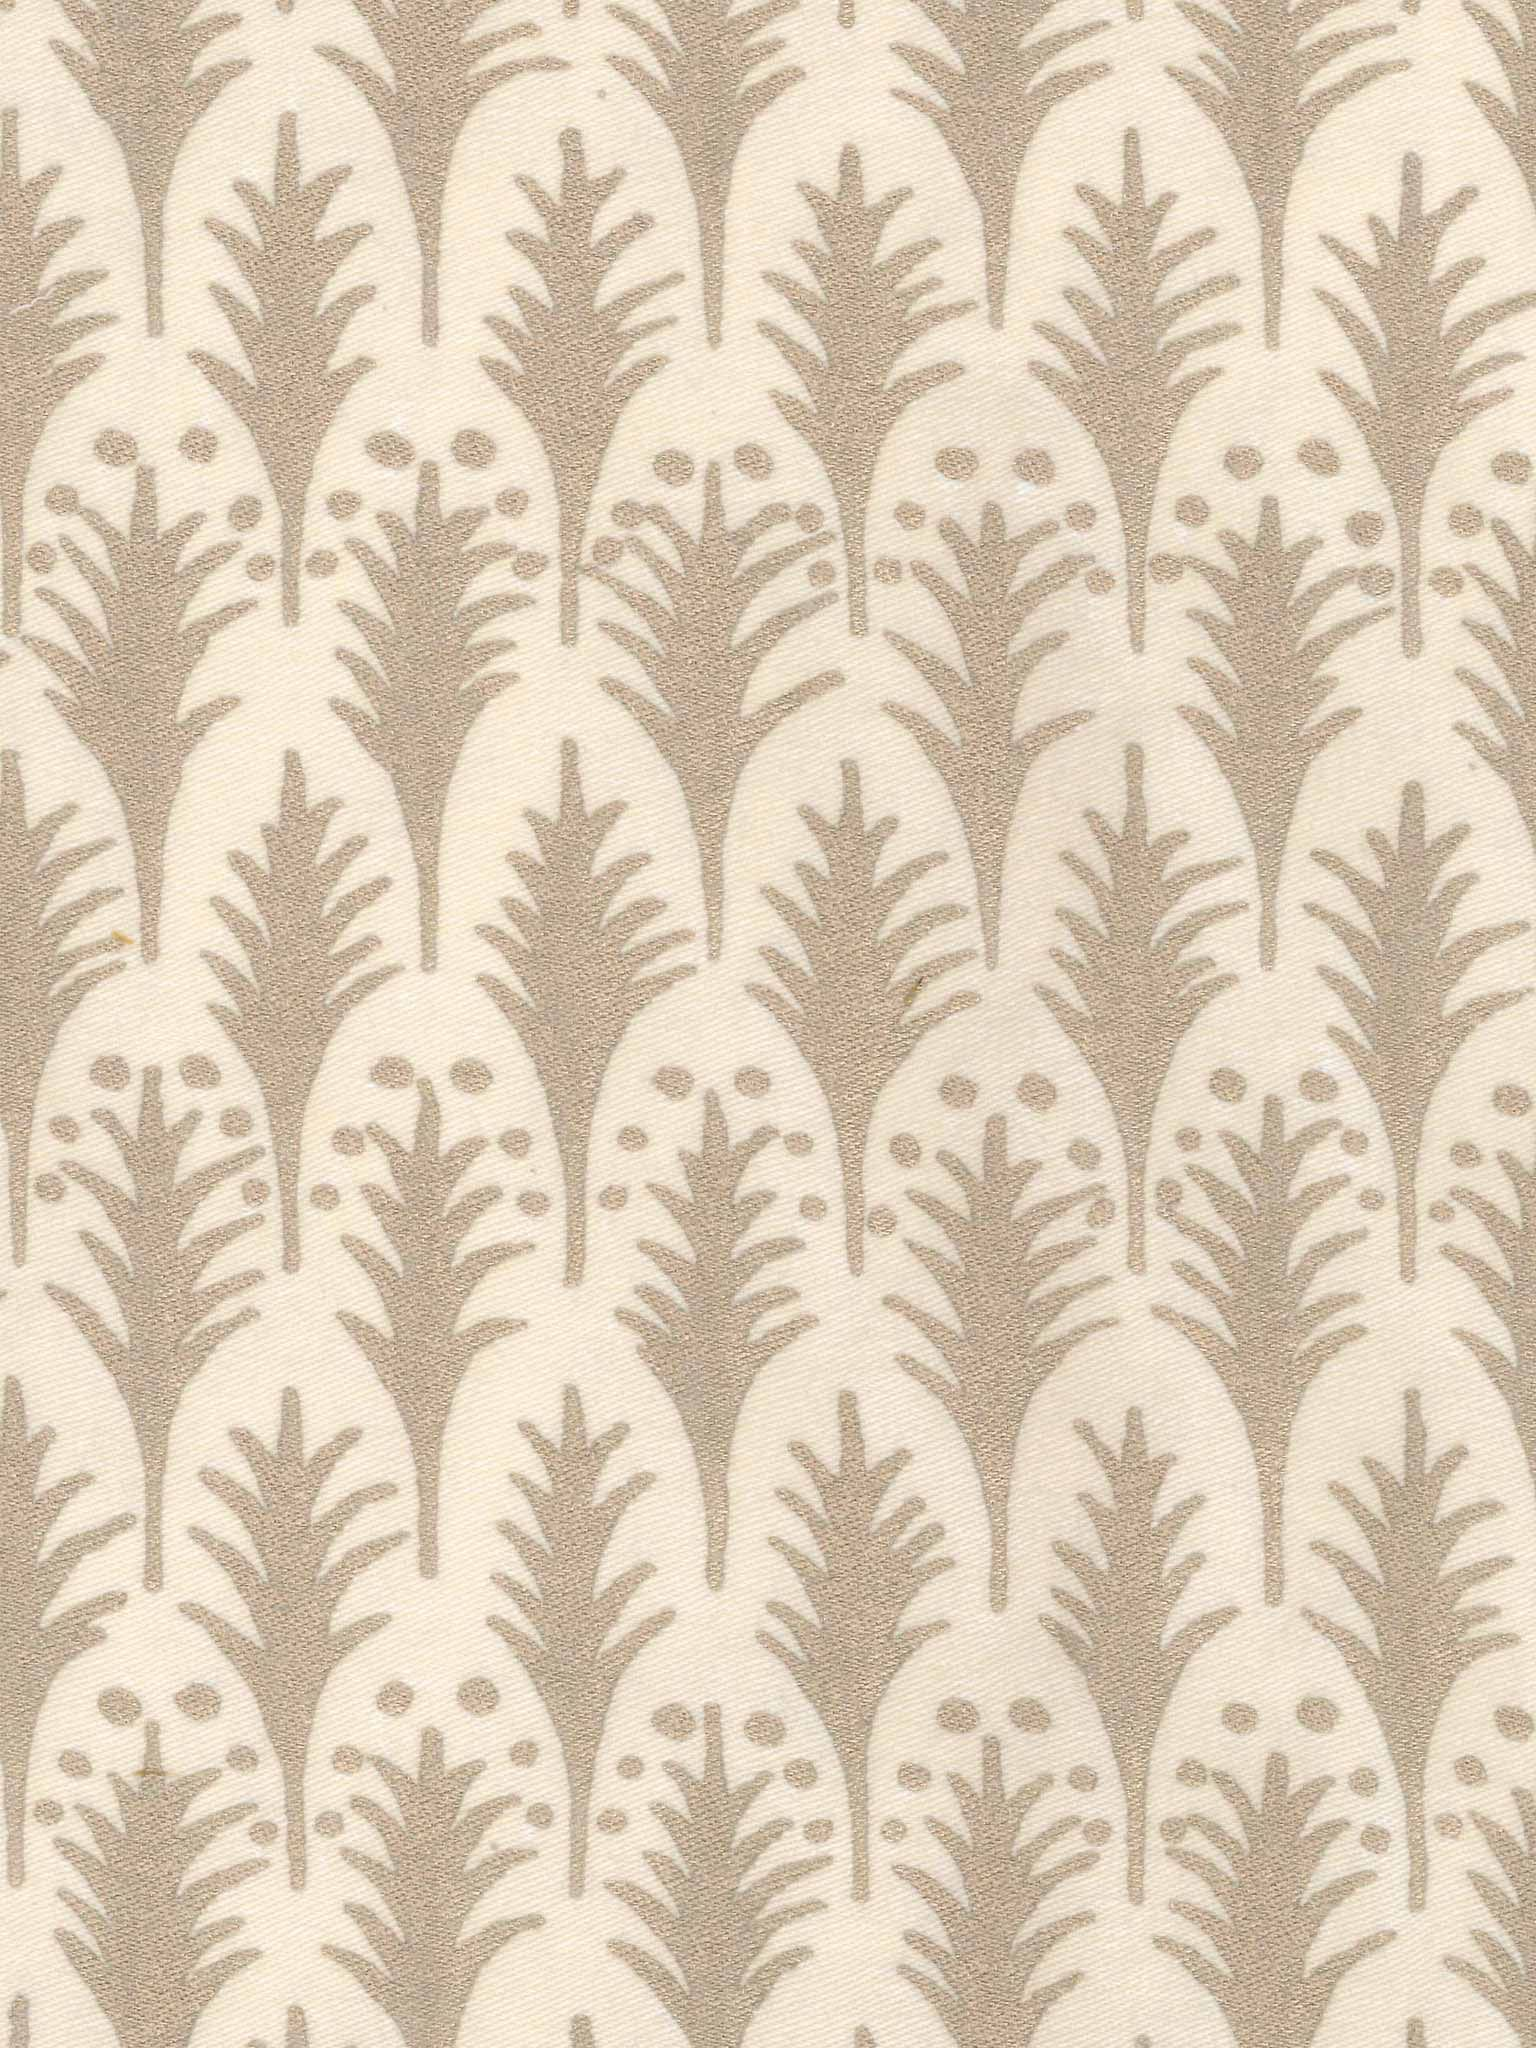 PIUMETTE in ivory & gold